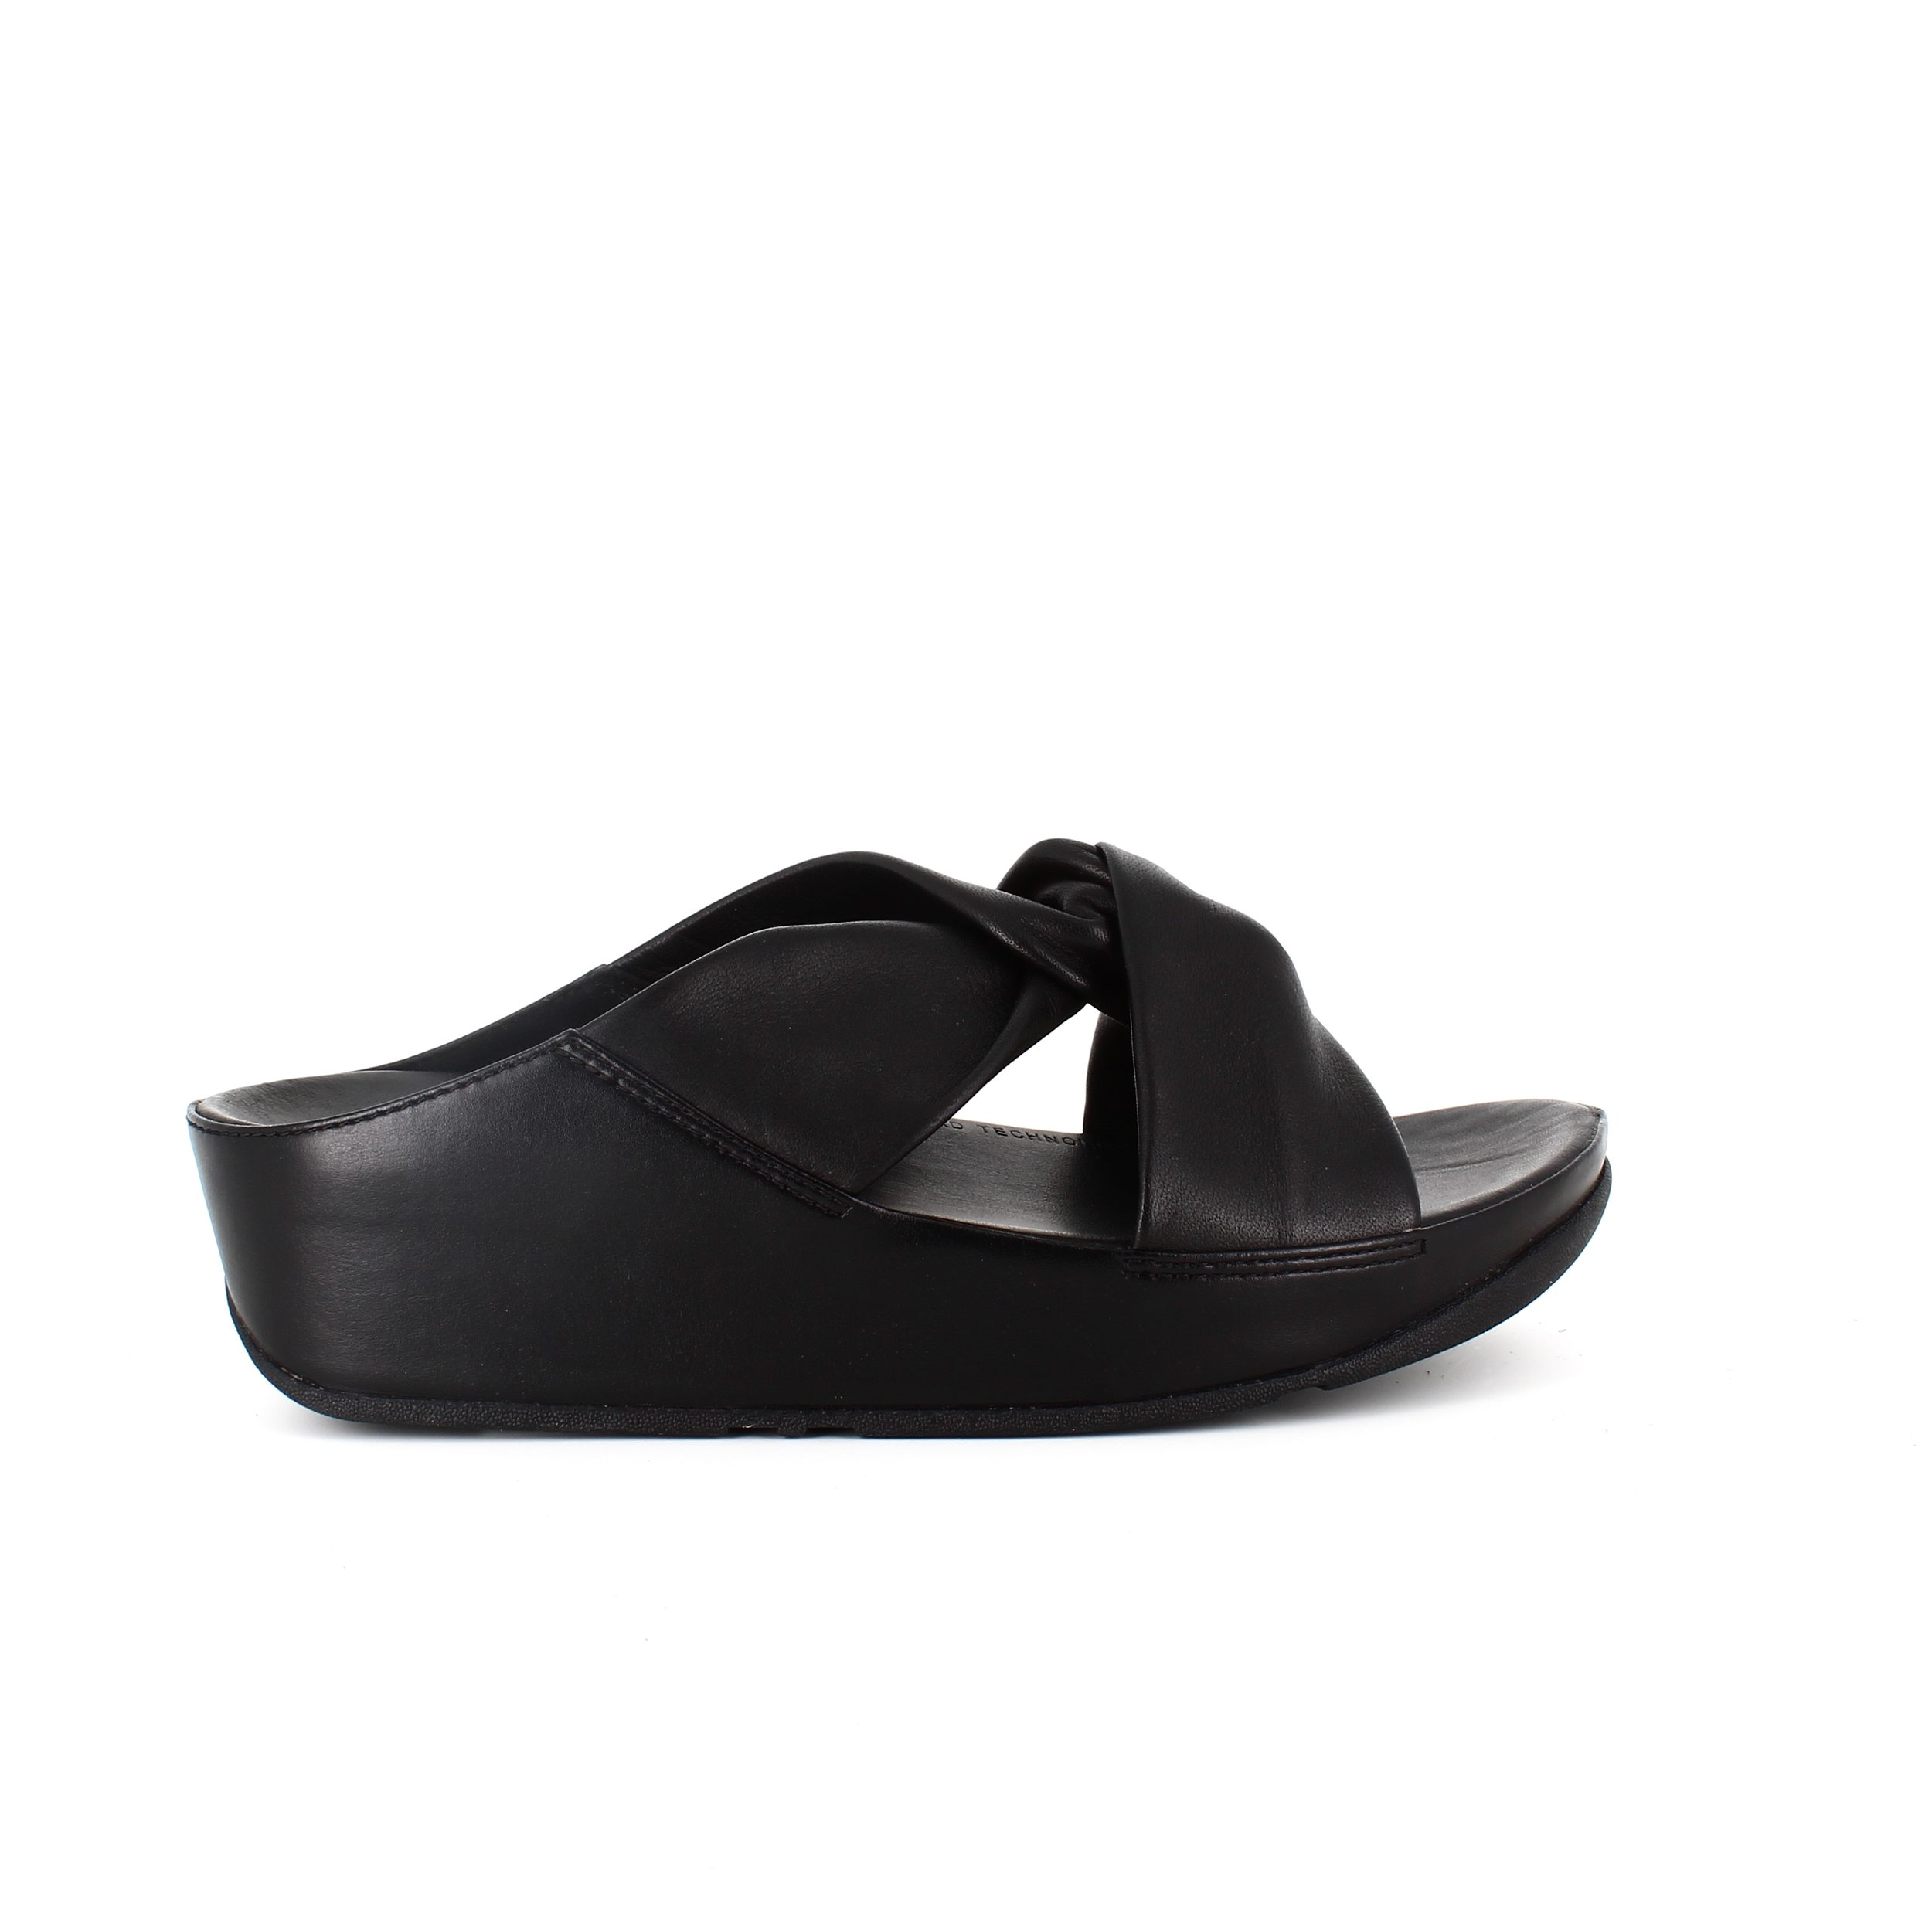 Image of   Fitflop læder sandal twiss slide - 41